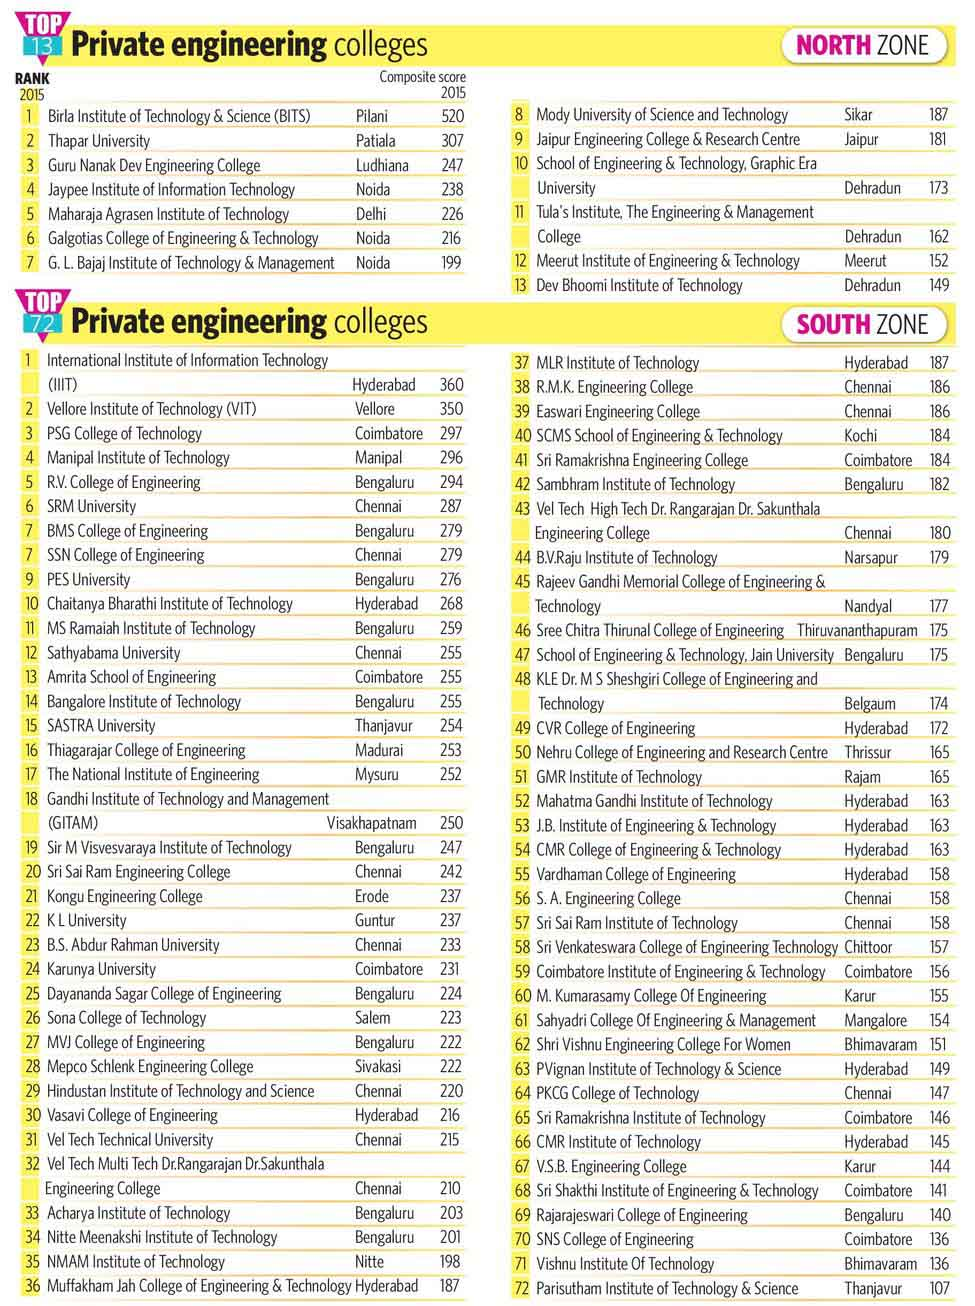 80-TOP-13-Private-engineering-colleges